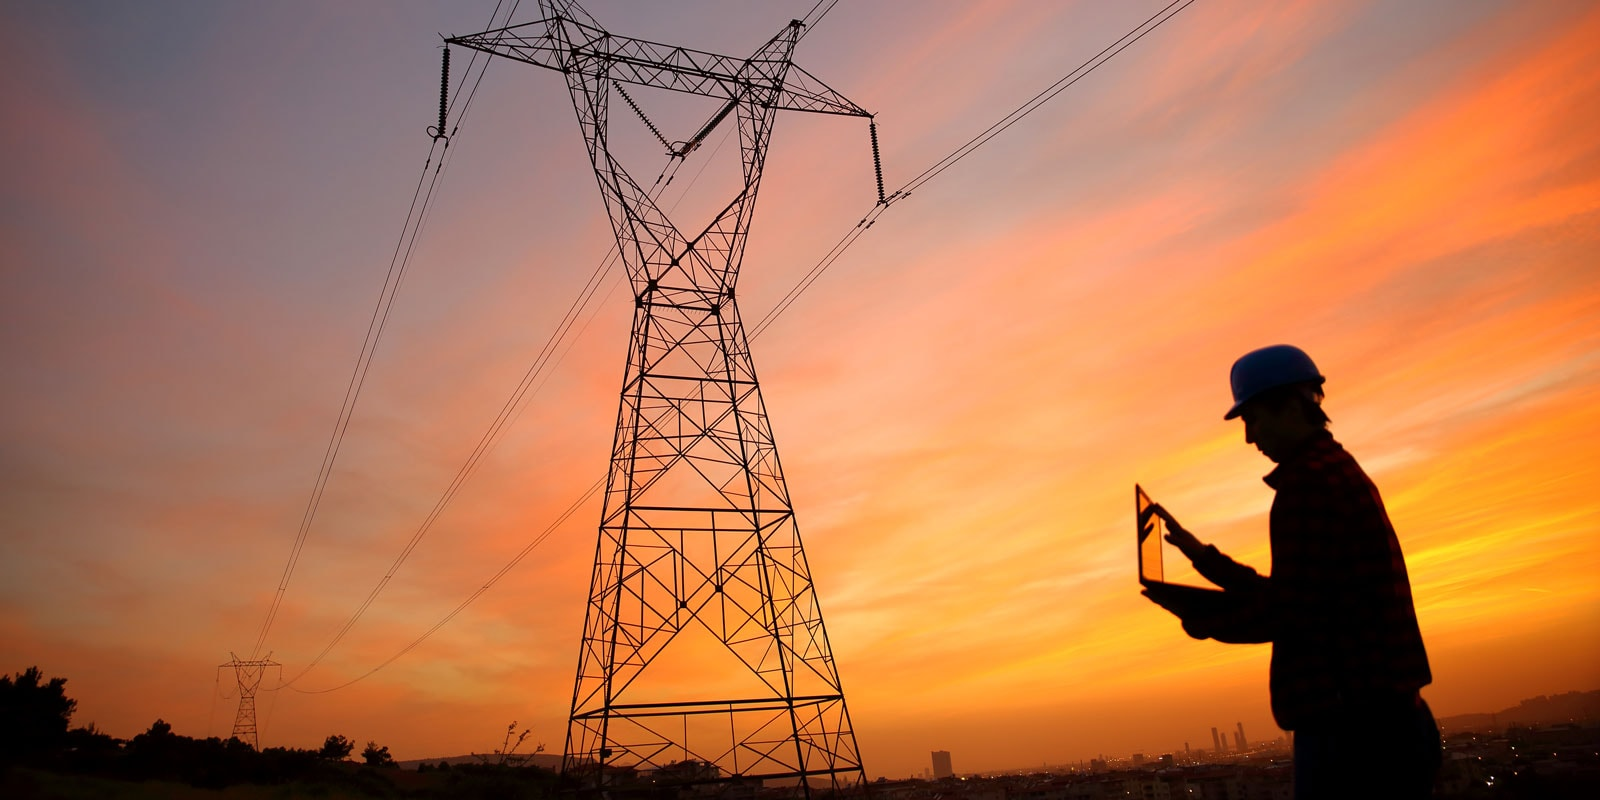 Electrical engineer stands under a pylon while working on an ipad